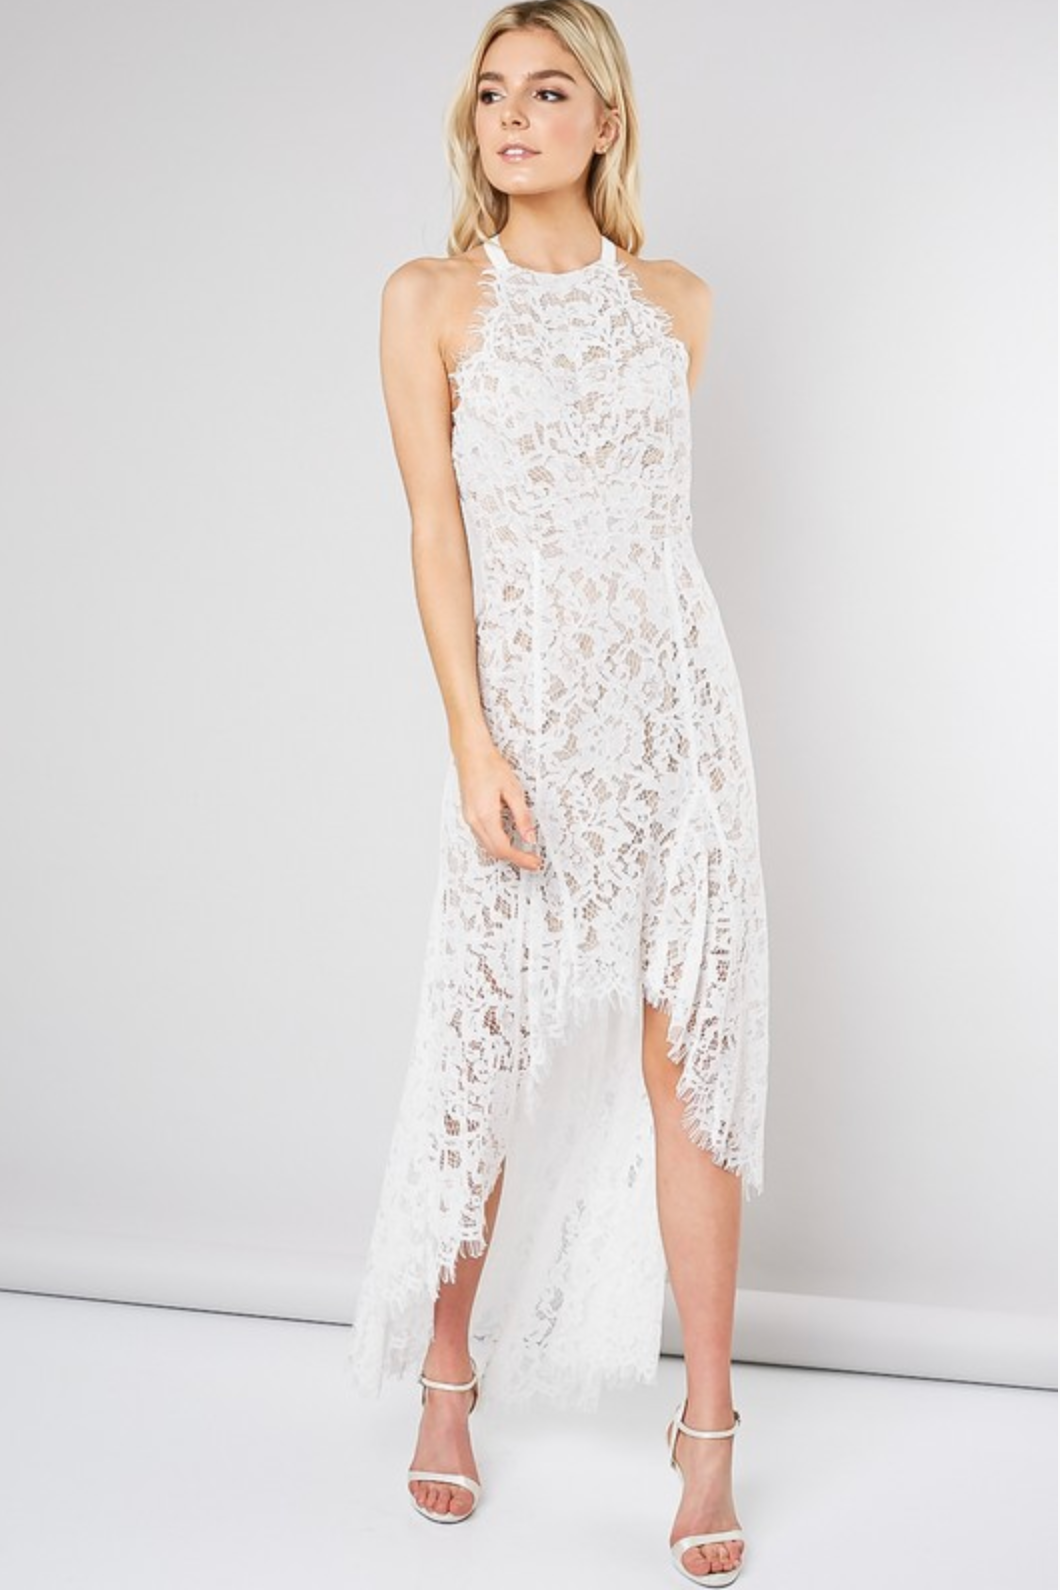 White Lace Halter Dress